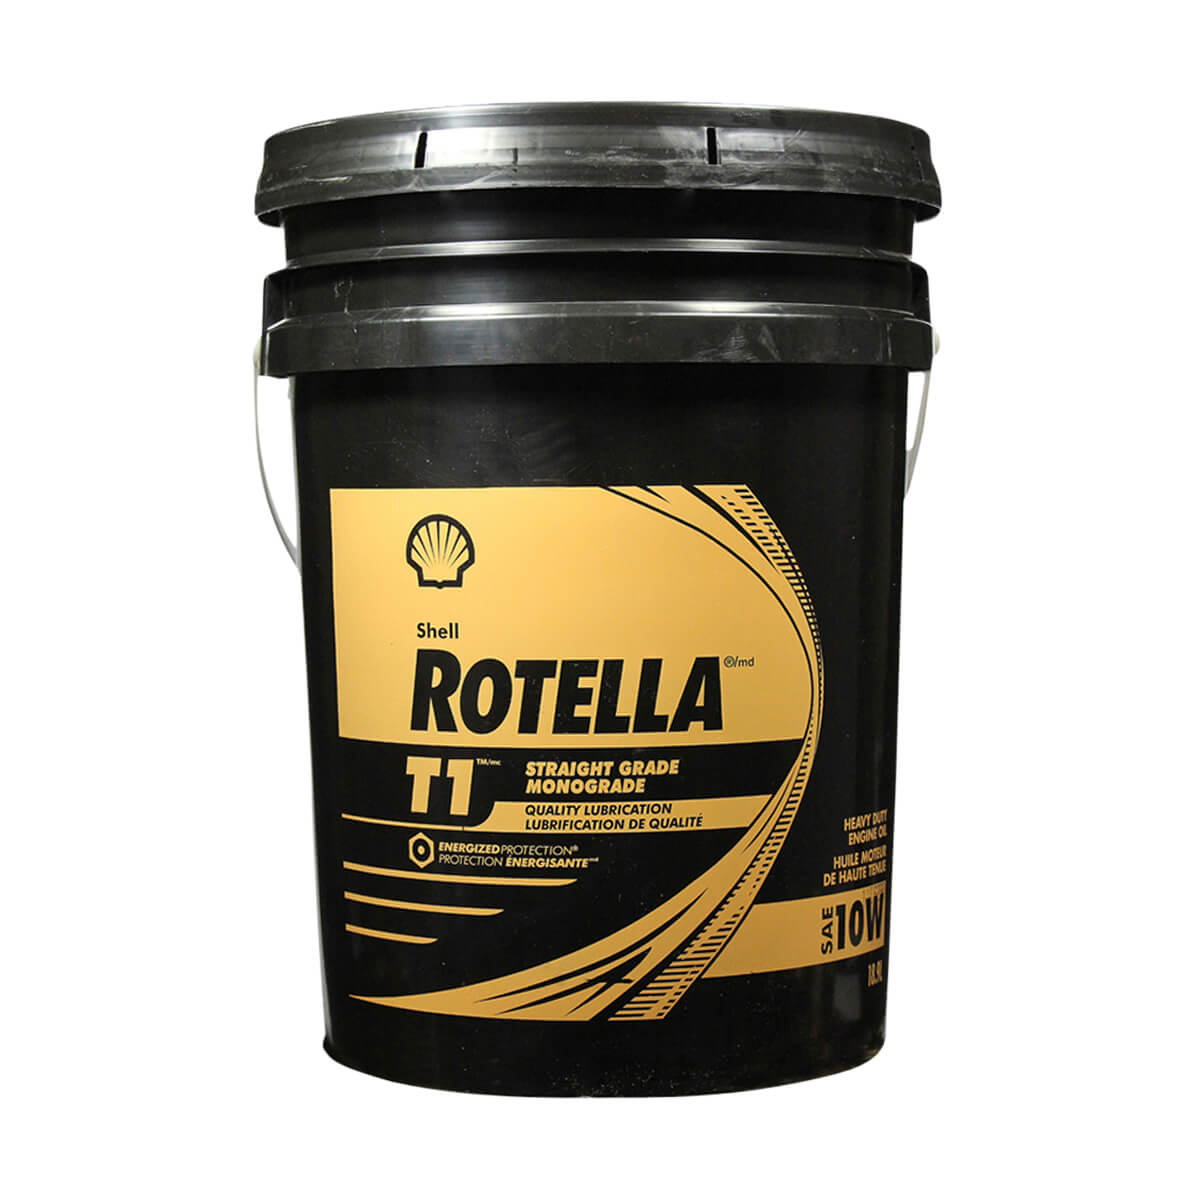 Shell Rotella T1 10W - 18.9L